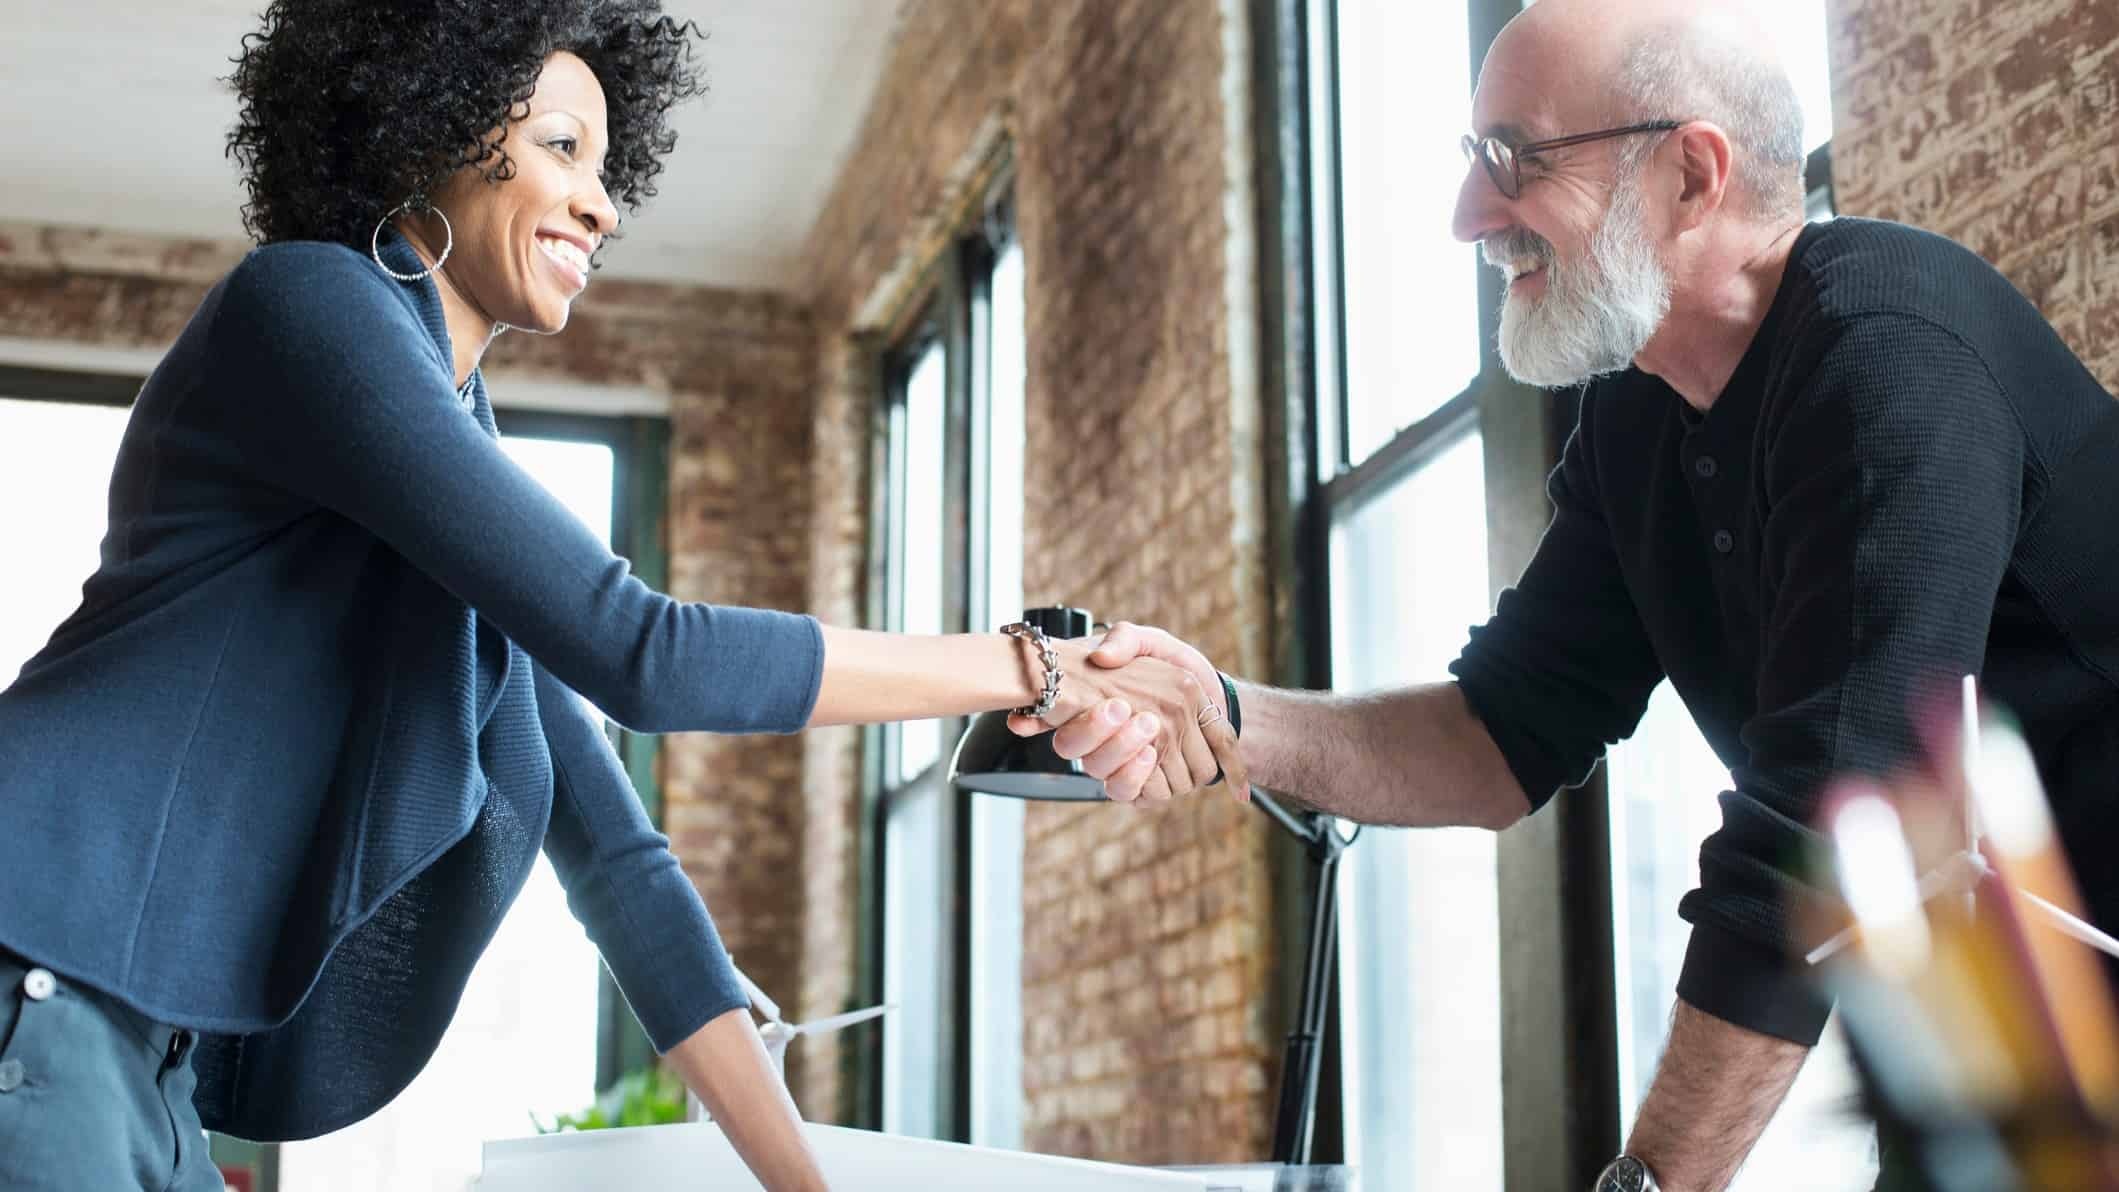 a man and woman agreeing to a deal with a handshake